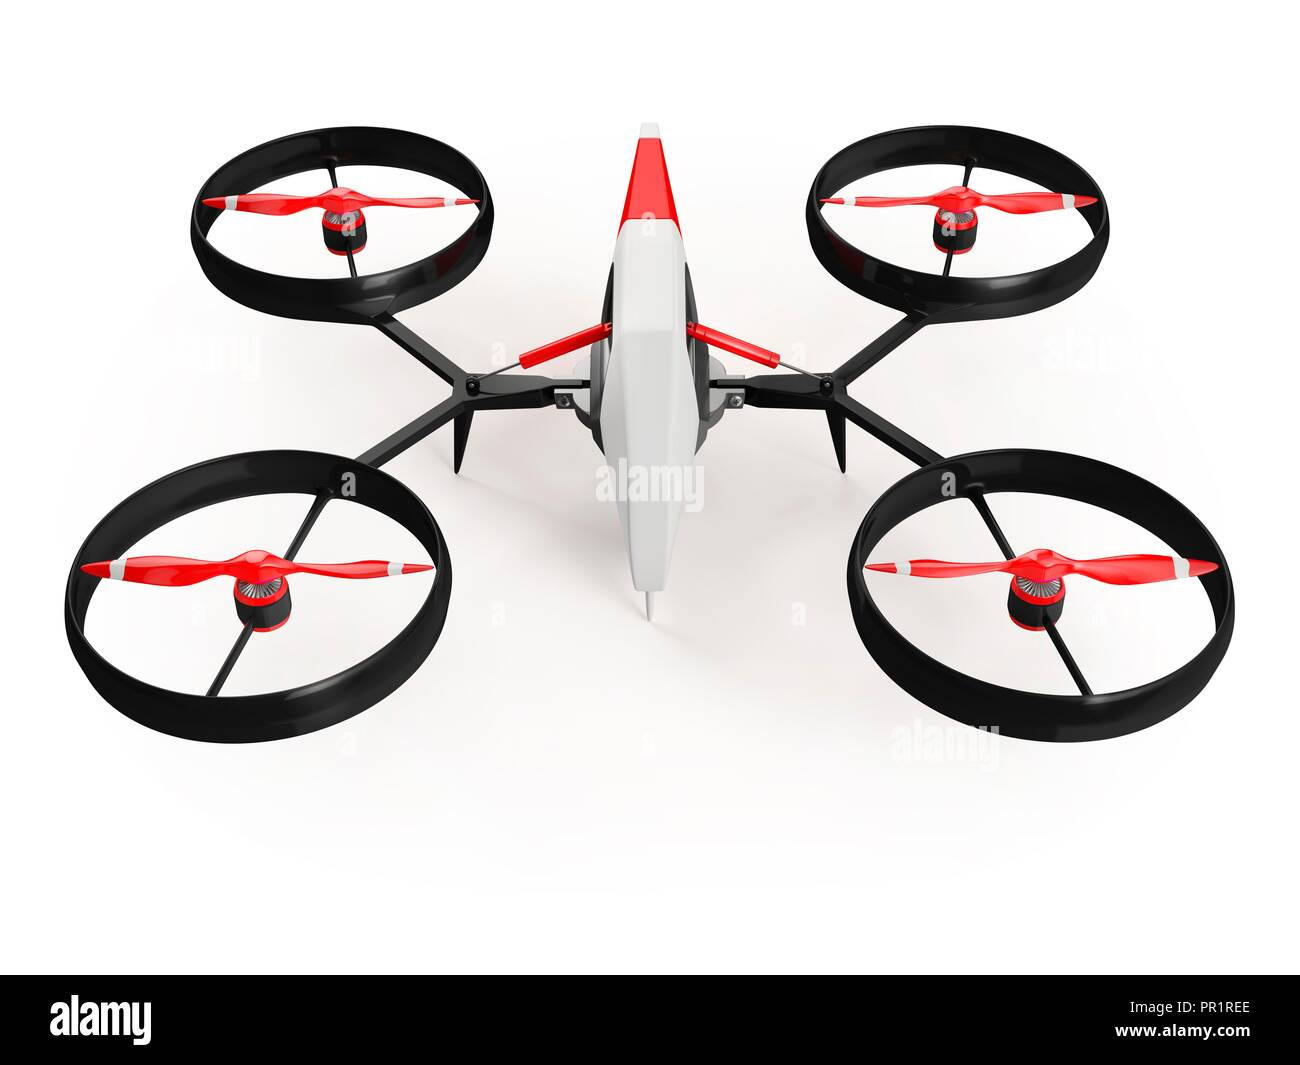 Quadcopter drone with red propeller, illustration. - Stock Image